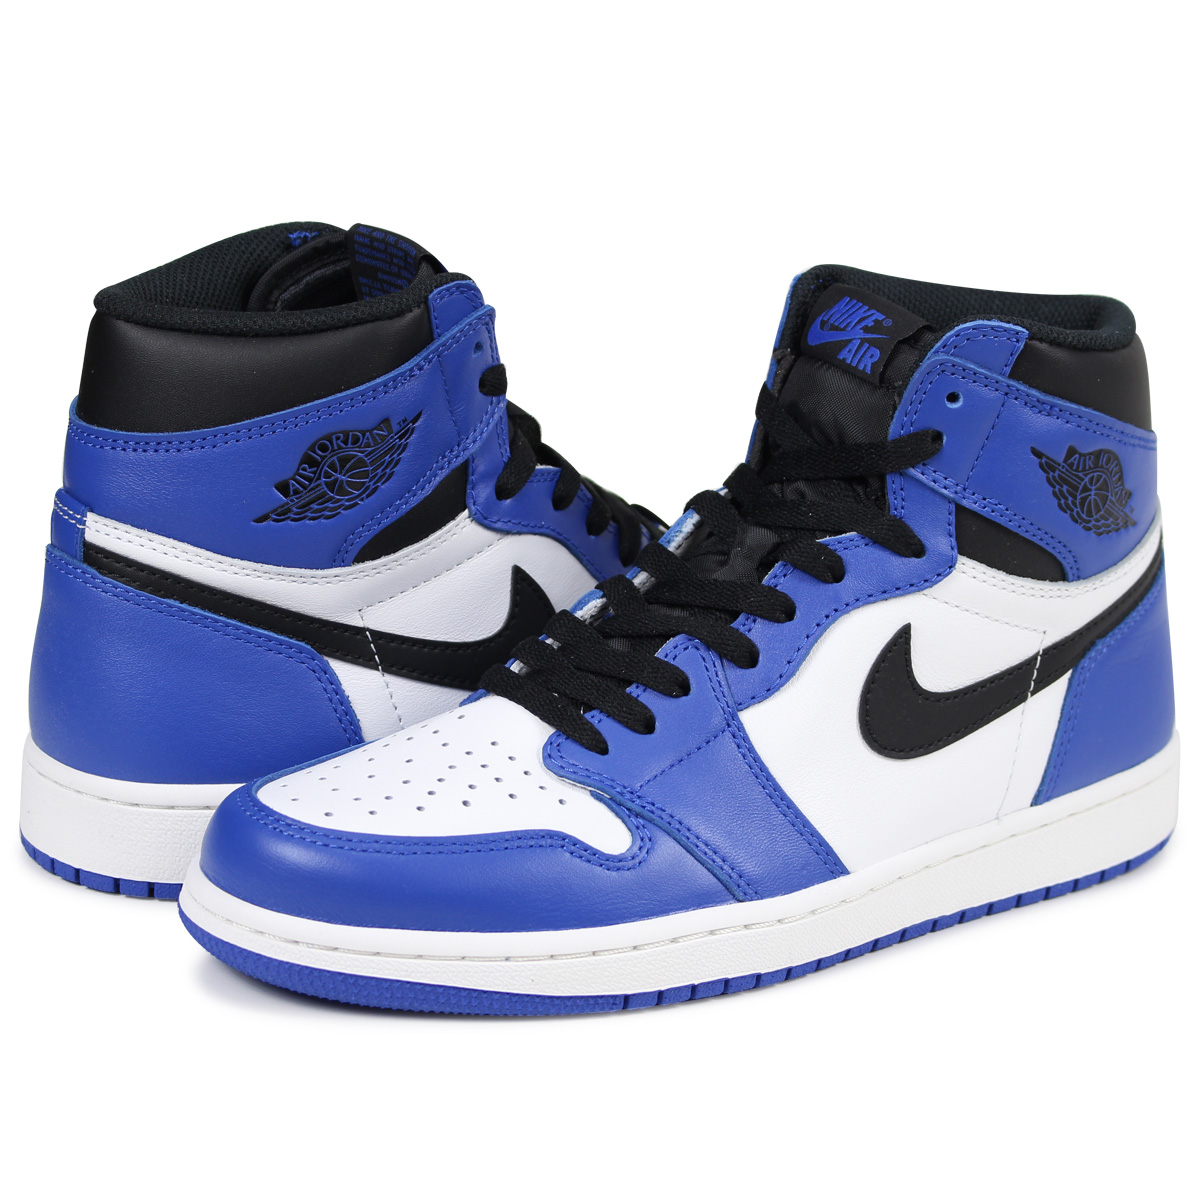 best sneakers 8dd37 5ac9d NIKE AIR JORDAN 1 RETRO HIGH OG GAME ROYAL Nike Air Jordan 1 nostalgic high  sneakers men 555,088-403 blue load planned Shinnyu load in reservation  product ...